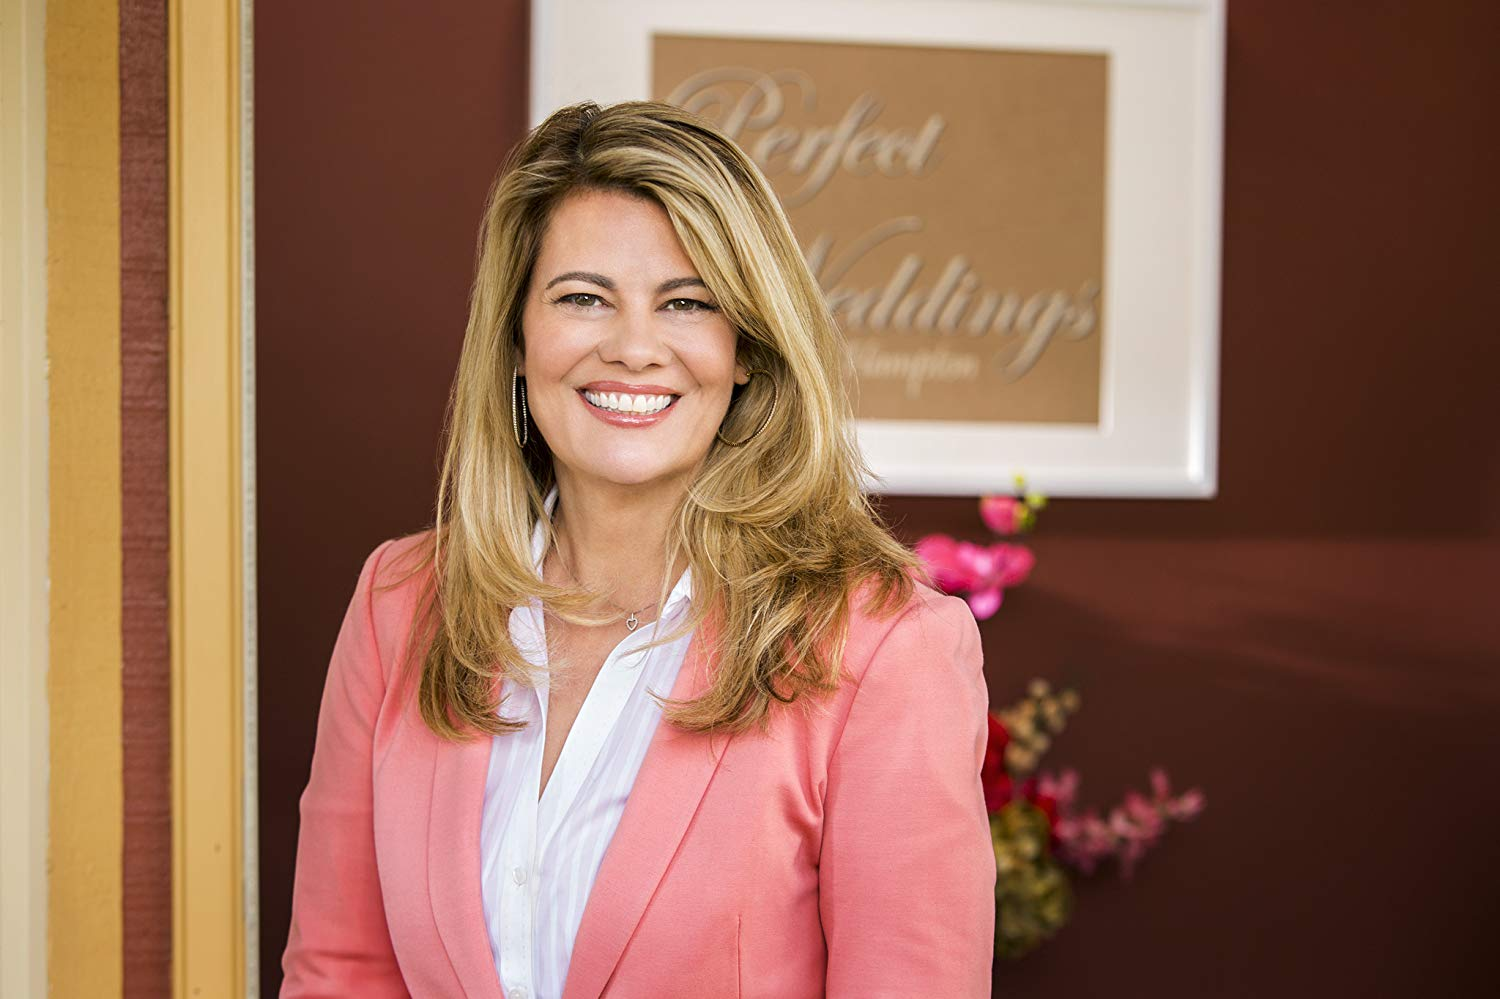 Career, Lisa Whelchel, celebrities with normal jobs